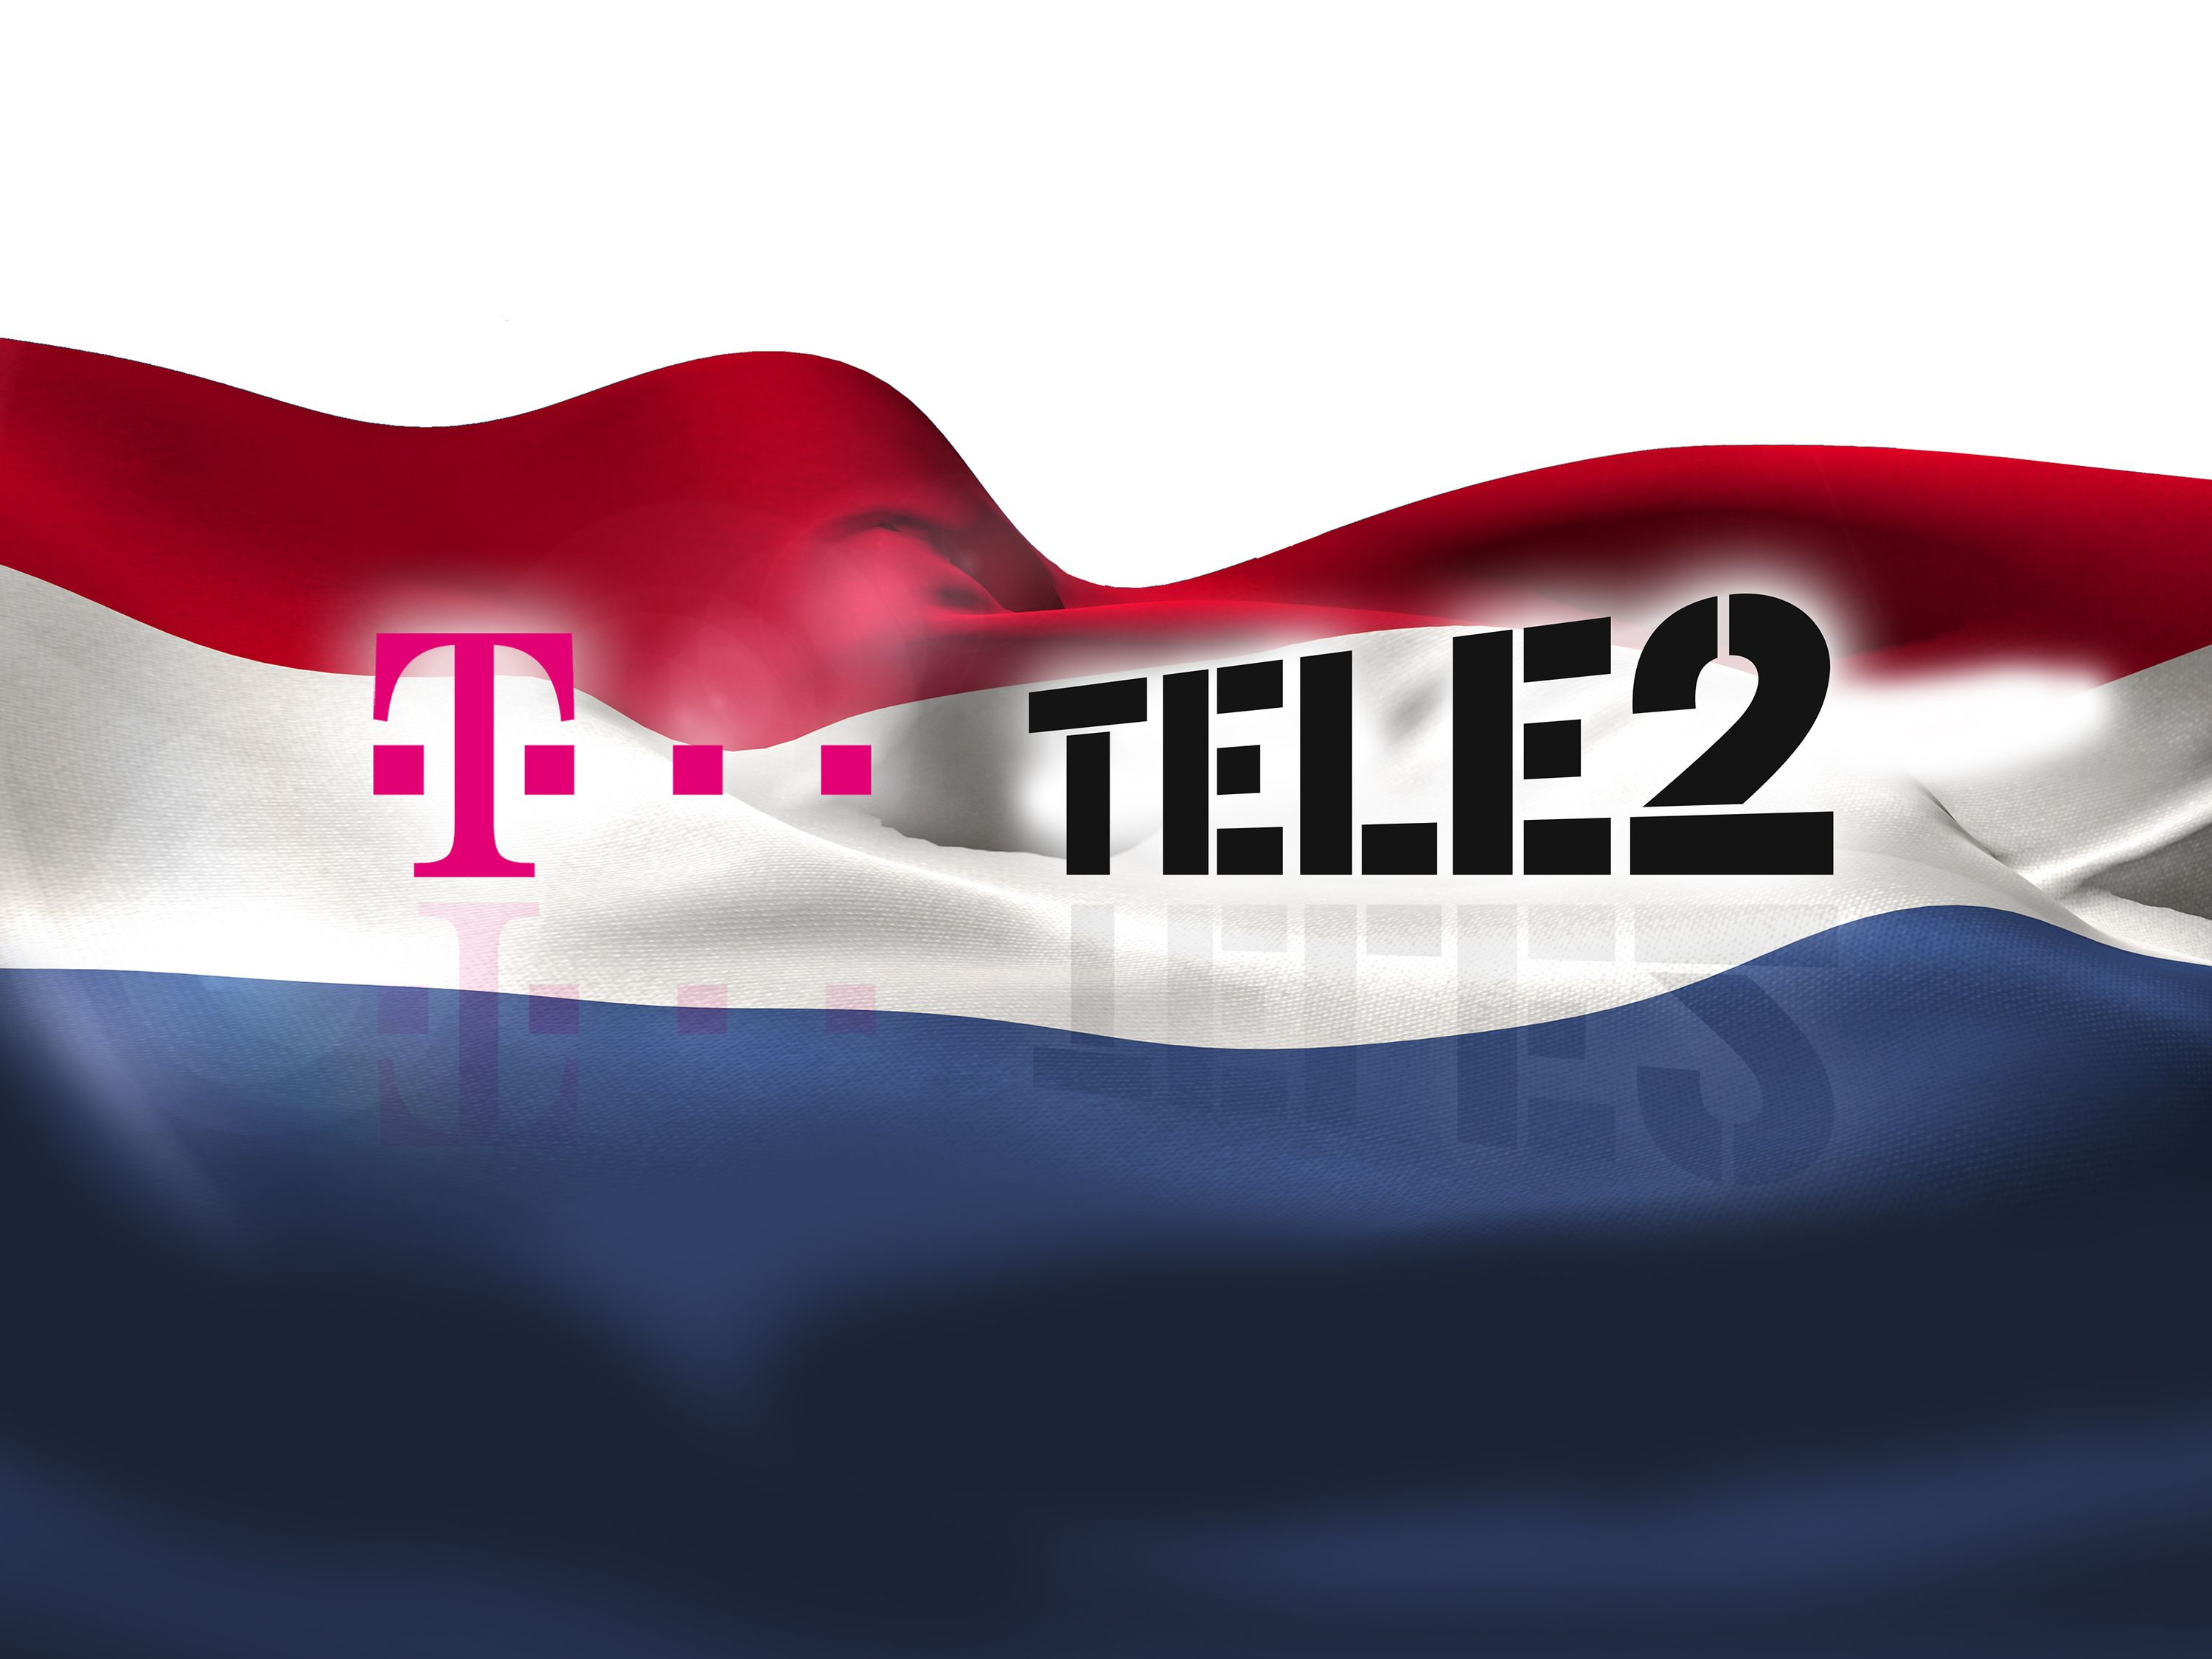 Logos of Deutsche Telekom and Tele2 NL in front of a Dutch flag.